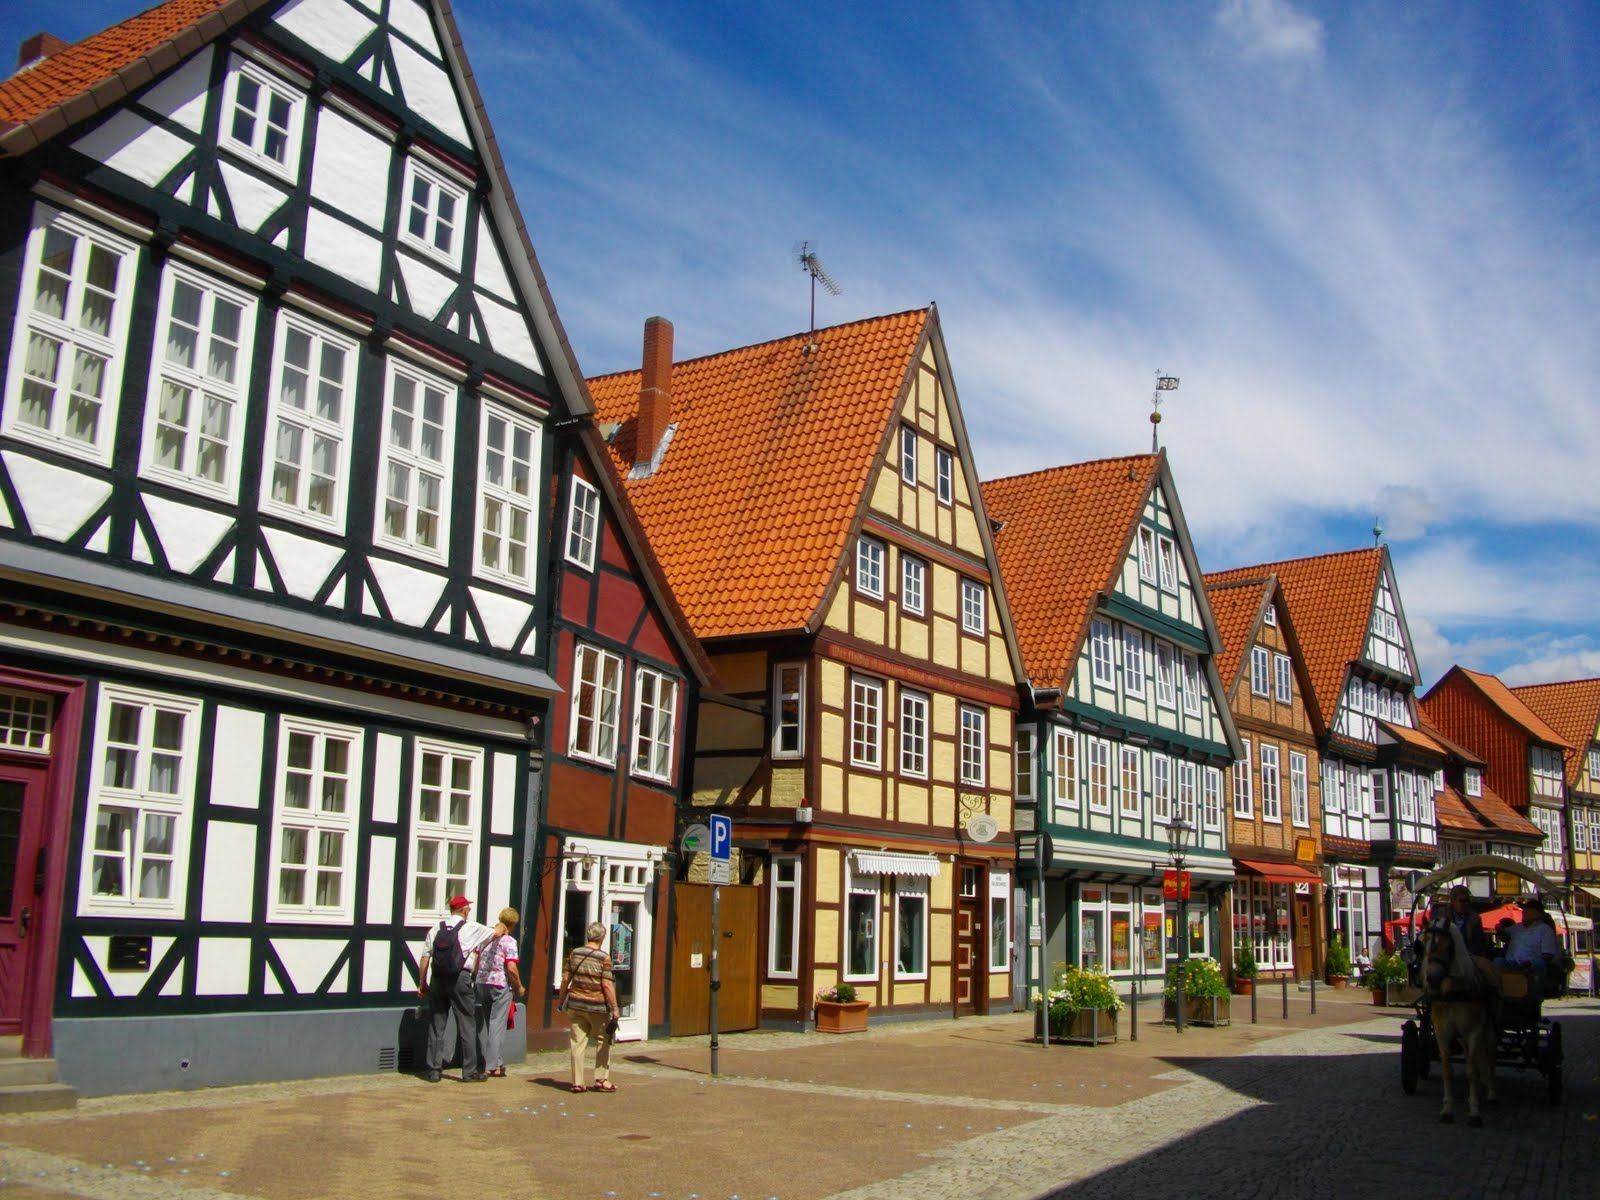 Celle Germany  City pictures : Celle, Germany | Favorite Places & Spaces | Pinterest